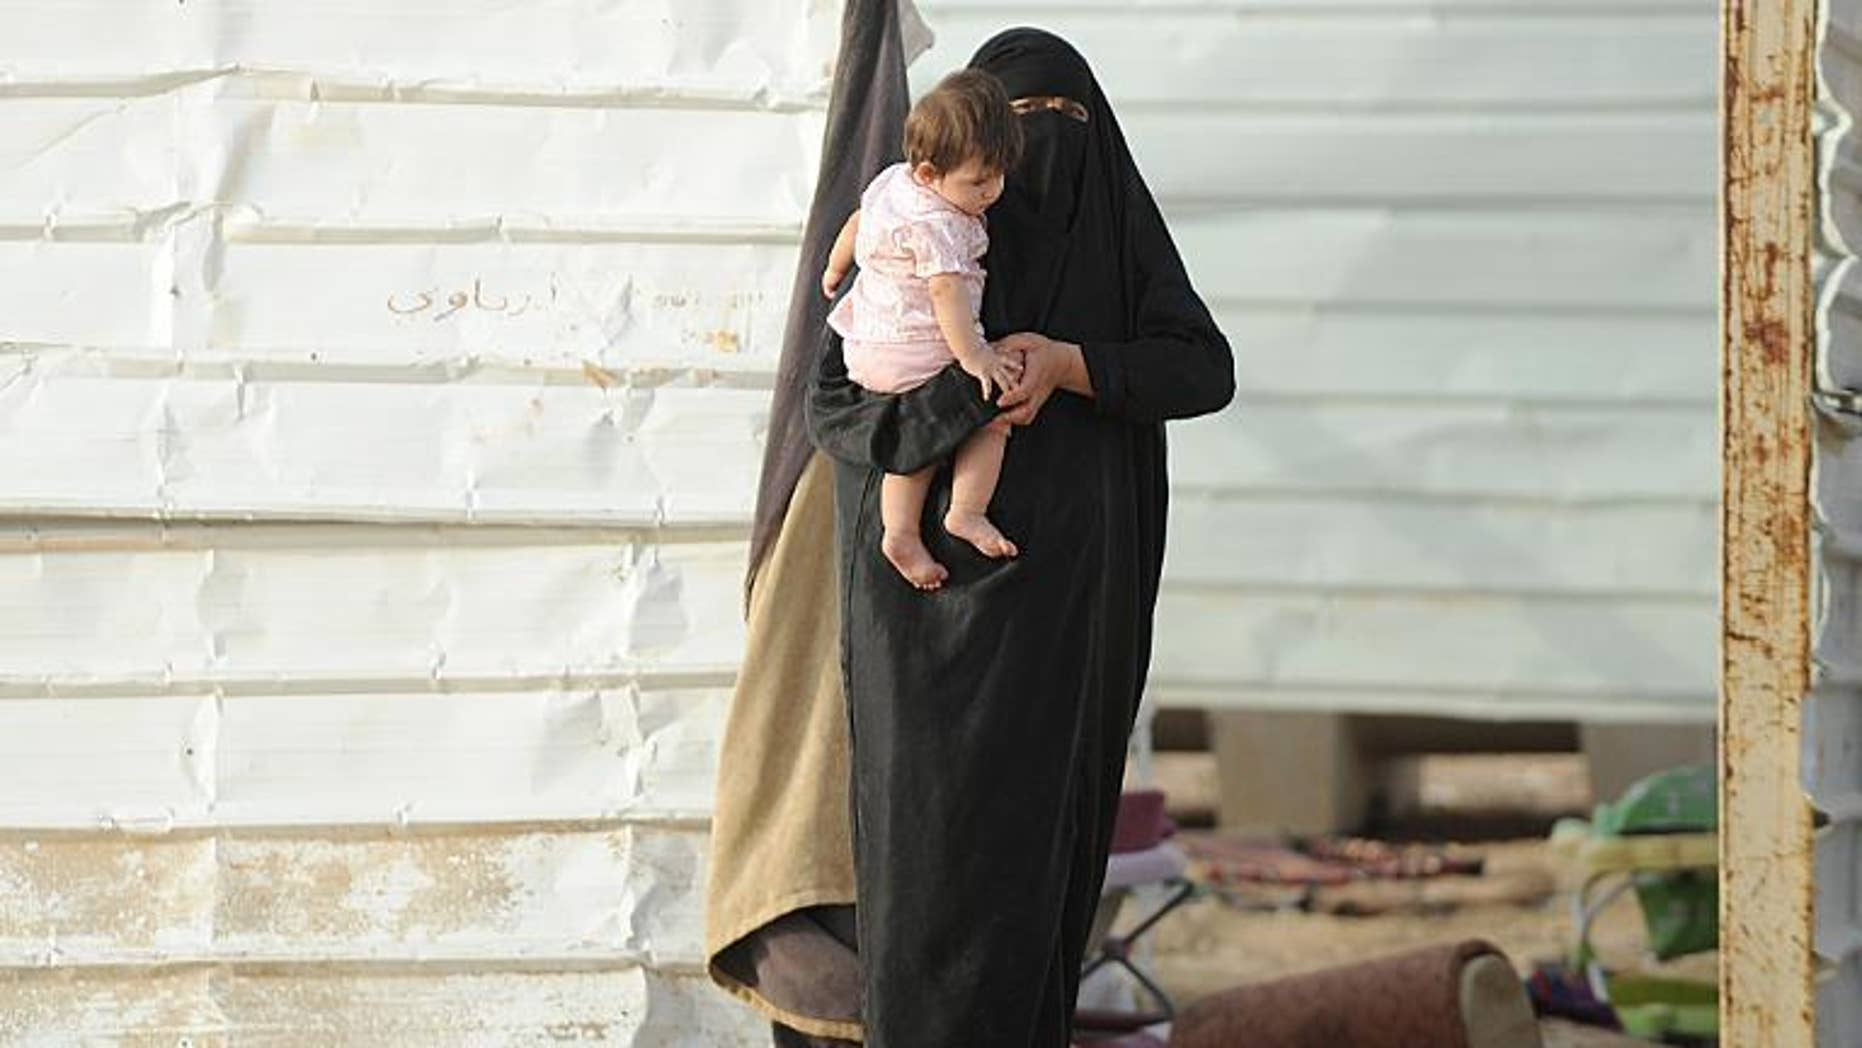 A stateless woman carries her child at her makeshift shelter in an impoverished neighborhood of Riyadh on July 10, 2013